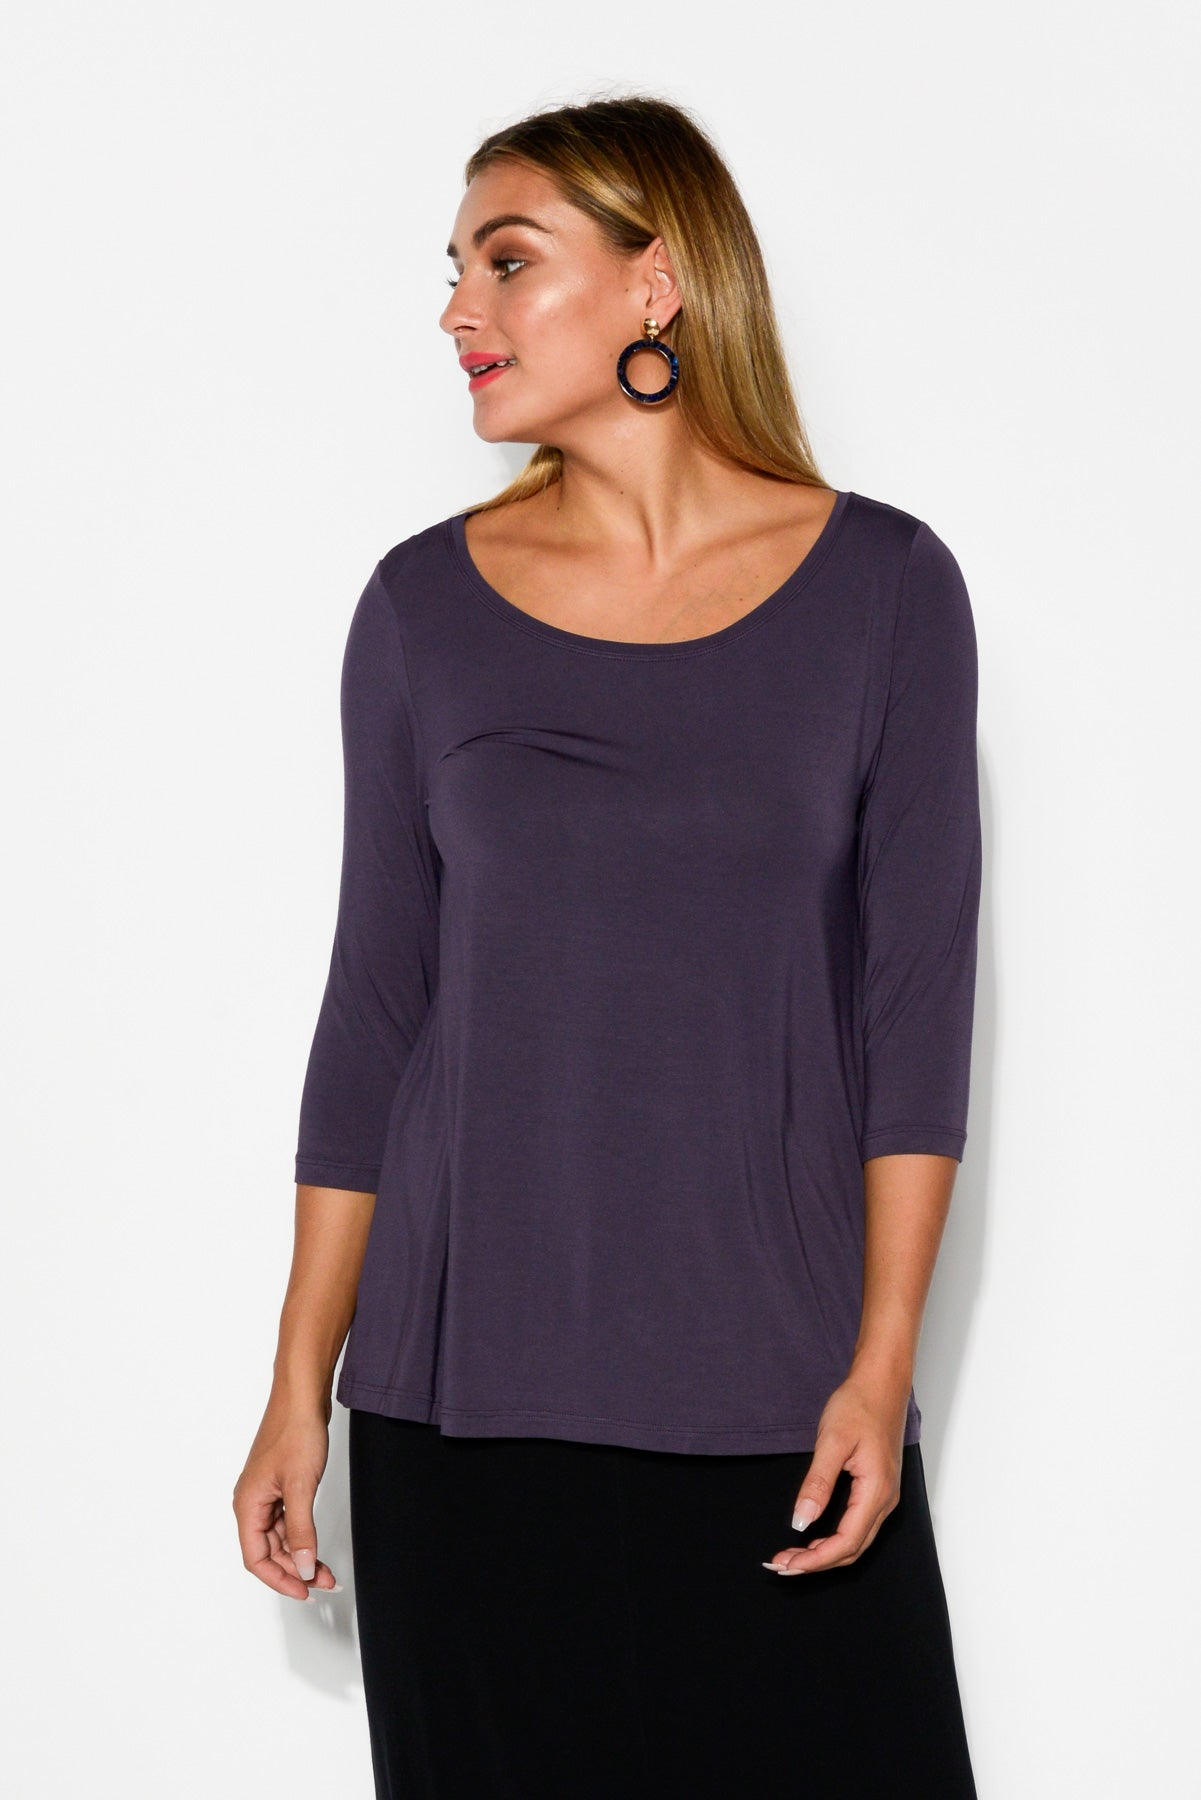 Purple 3/4 Sleeve Modal Swing Top - Blue Bungalow